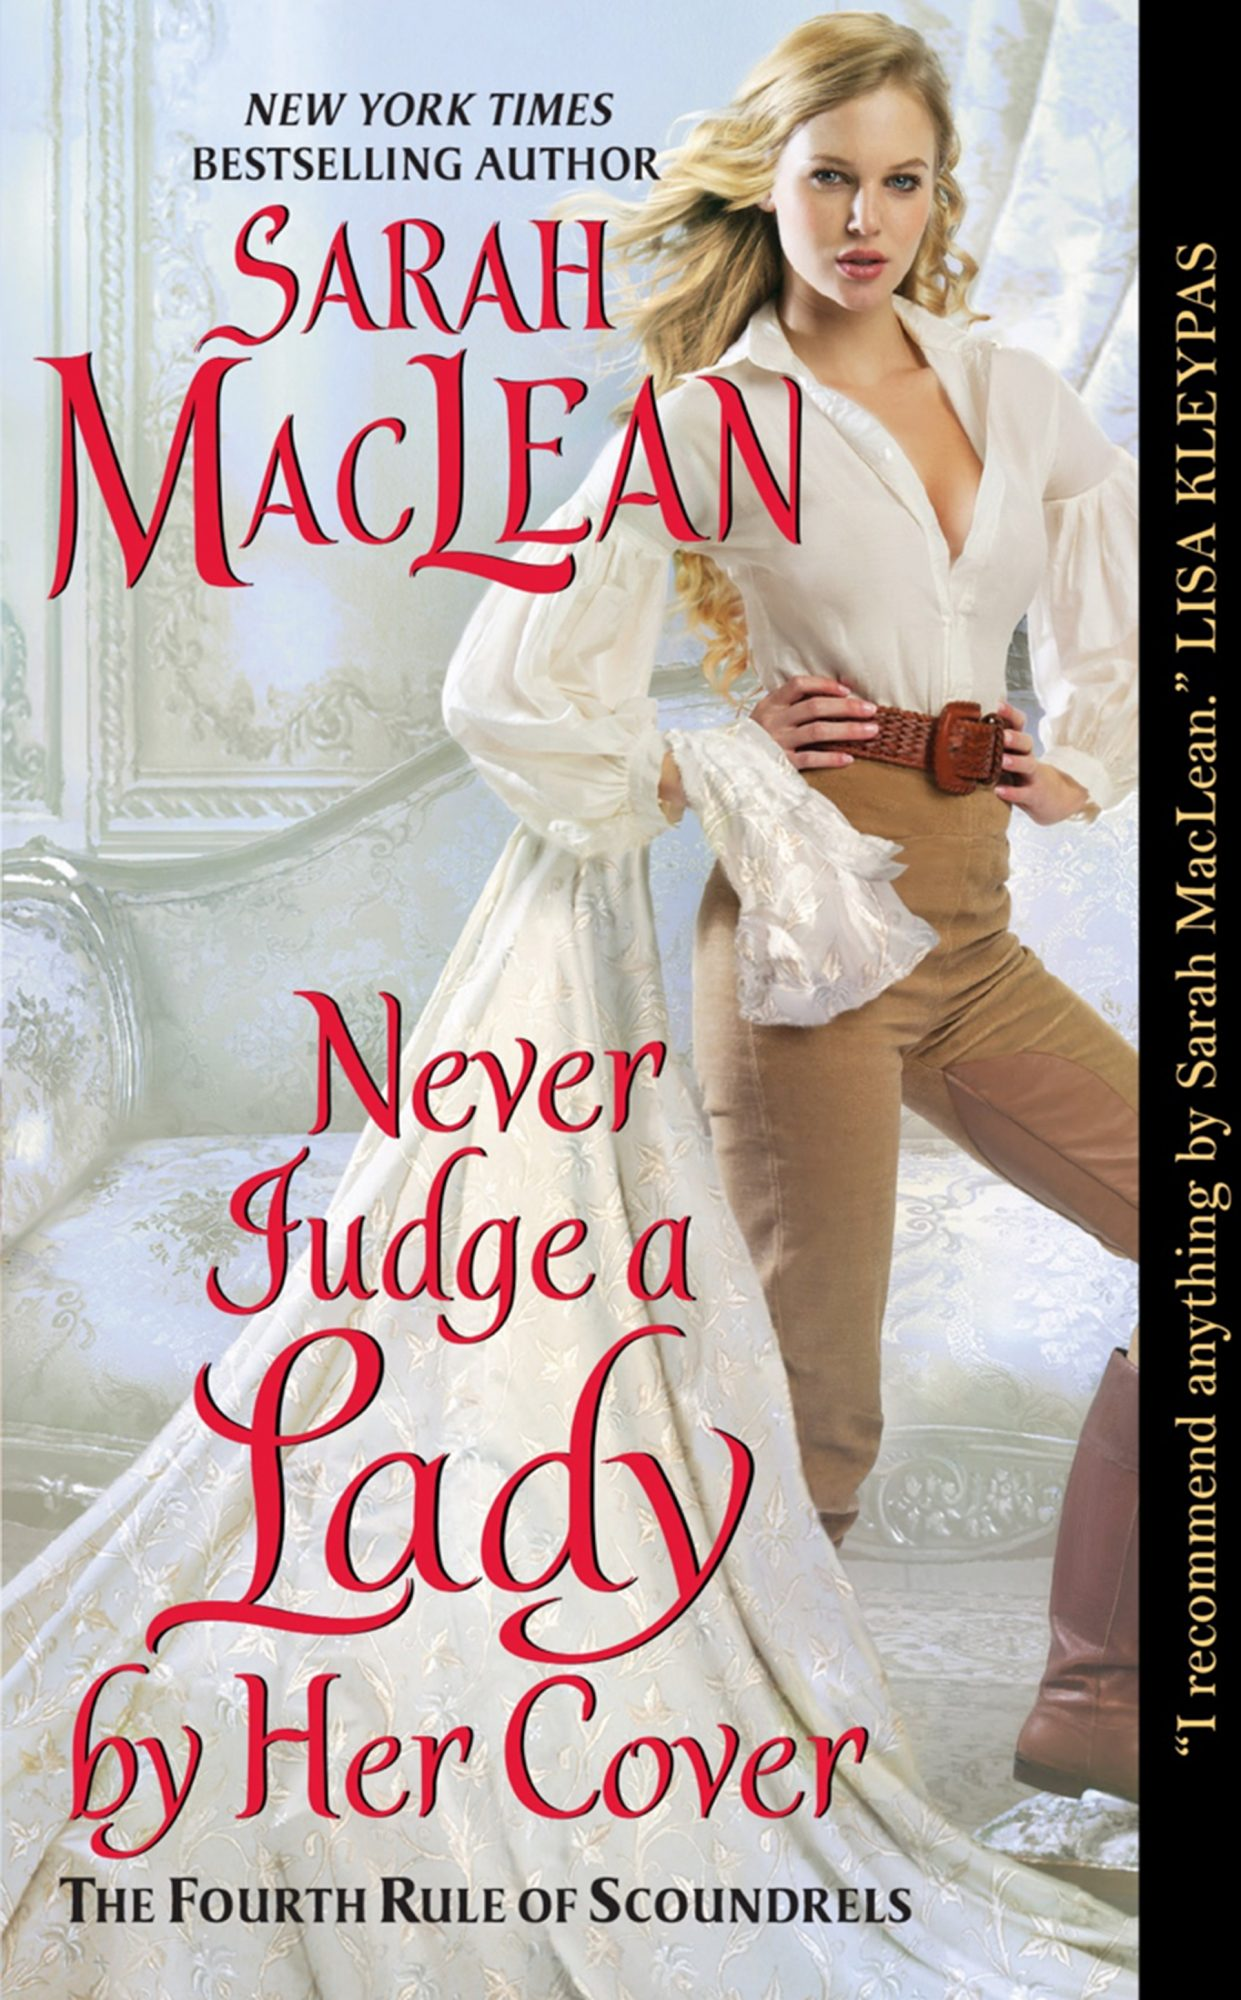 Never-judge-a-lady-2